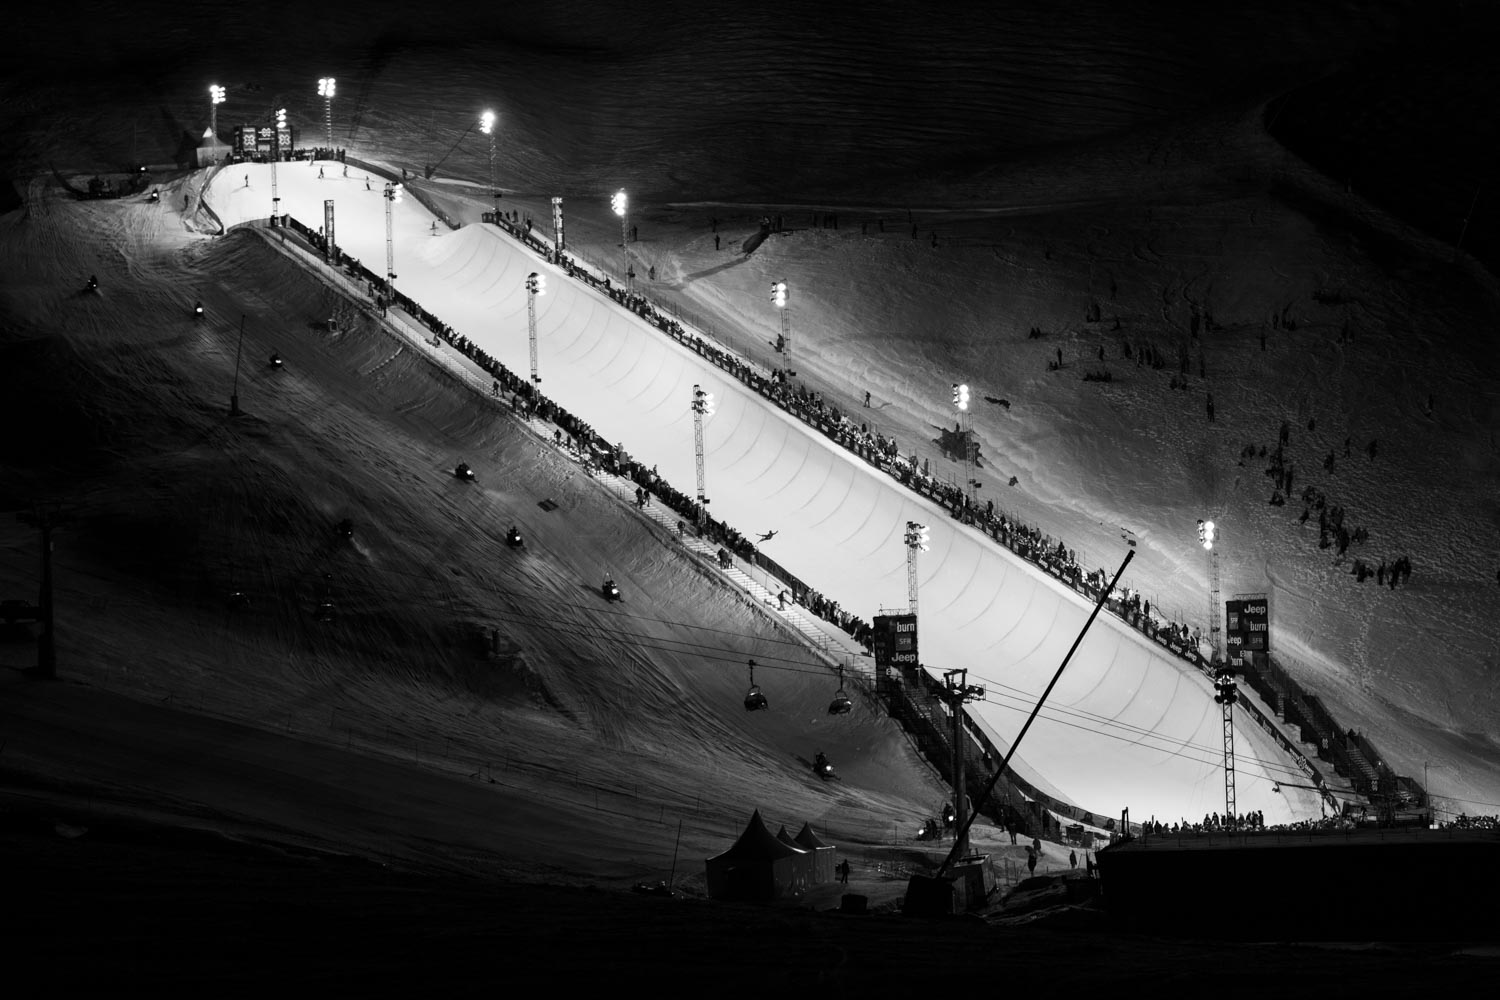 Winter X-Games - XGames 2012 - HalfPipe - SuperPipe - Tignes